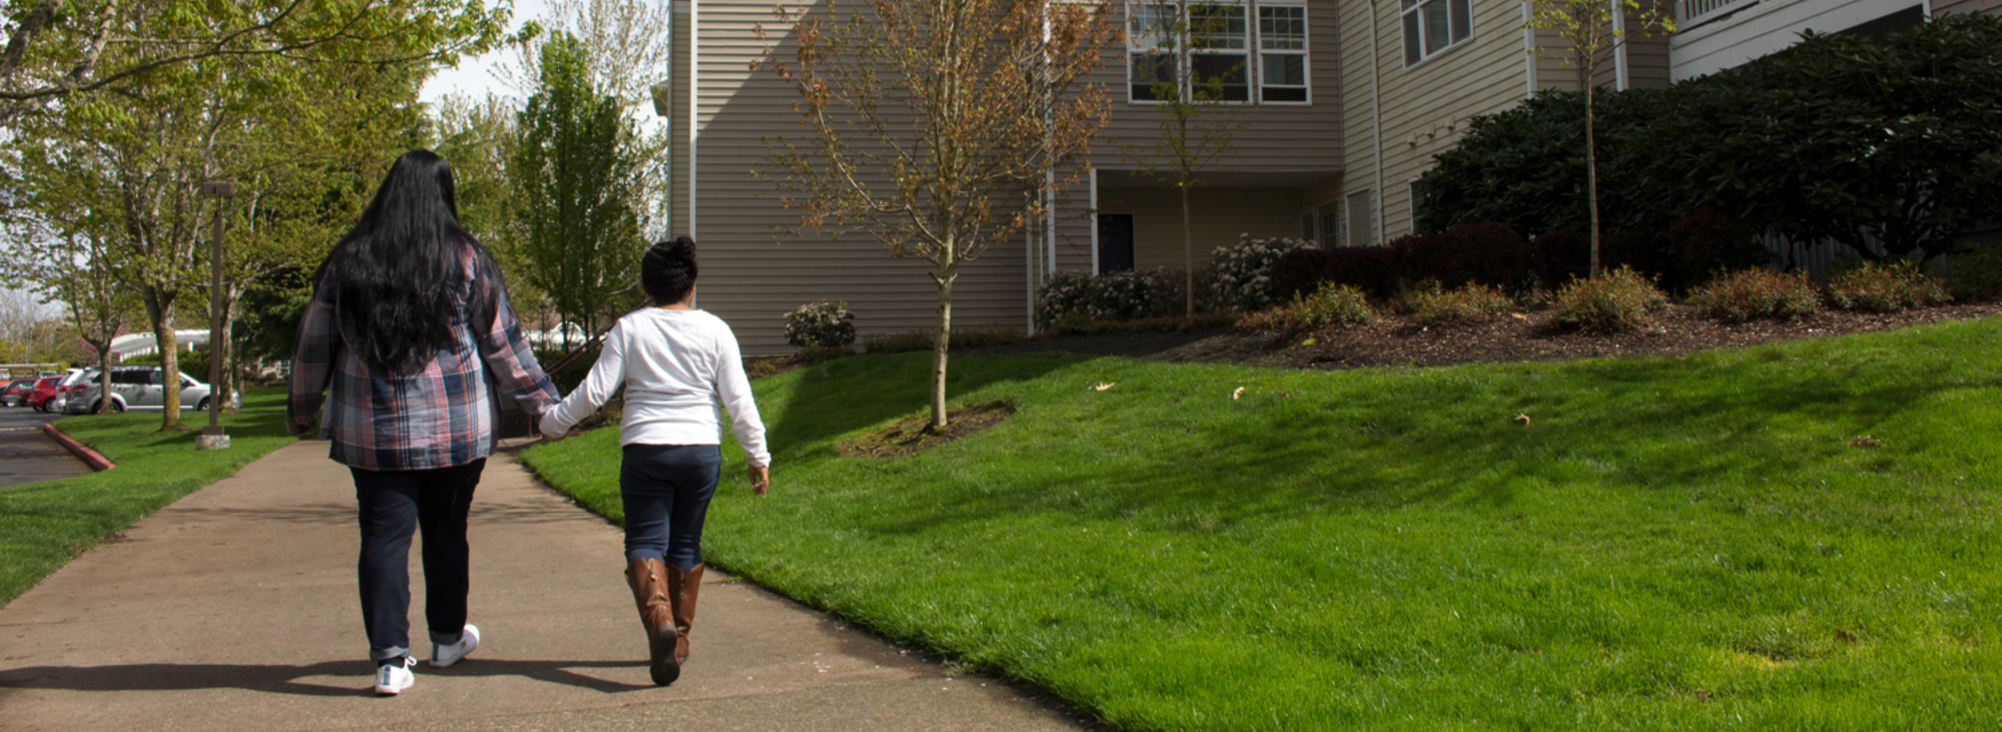 an adult and a child walk hand-in-hand on a sidewalk in front of an apartment complex